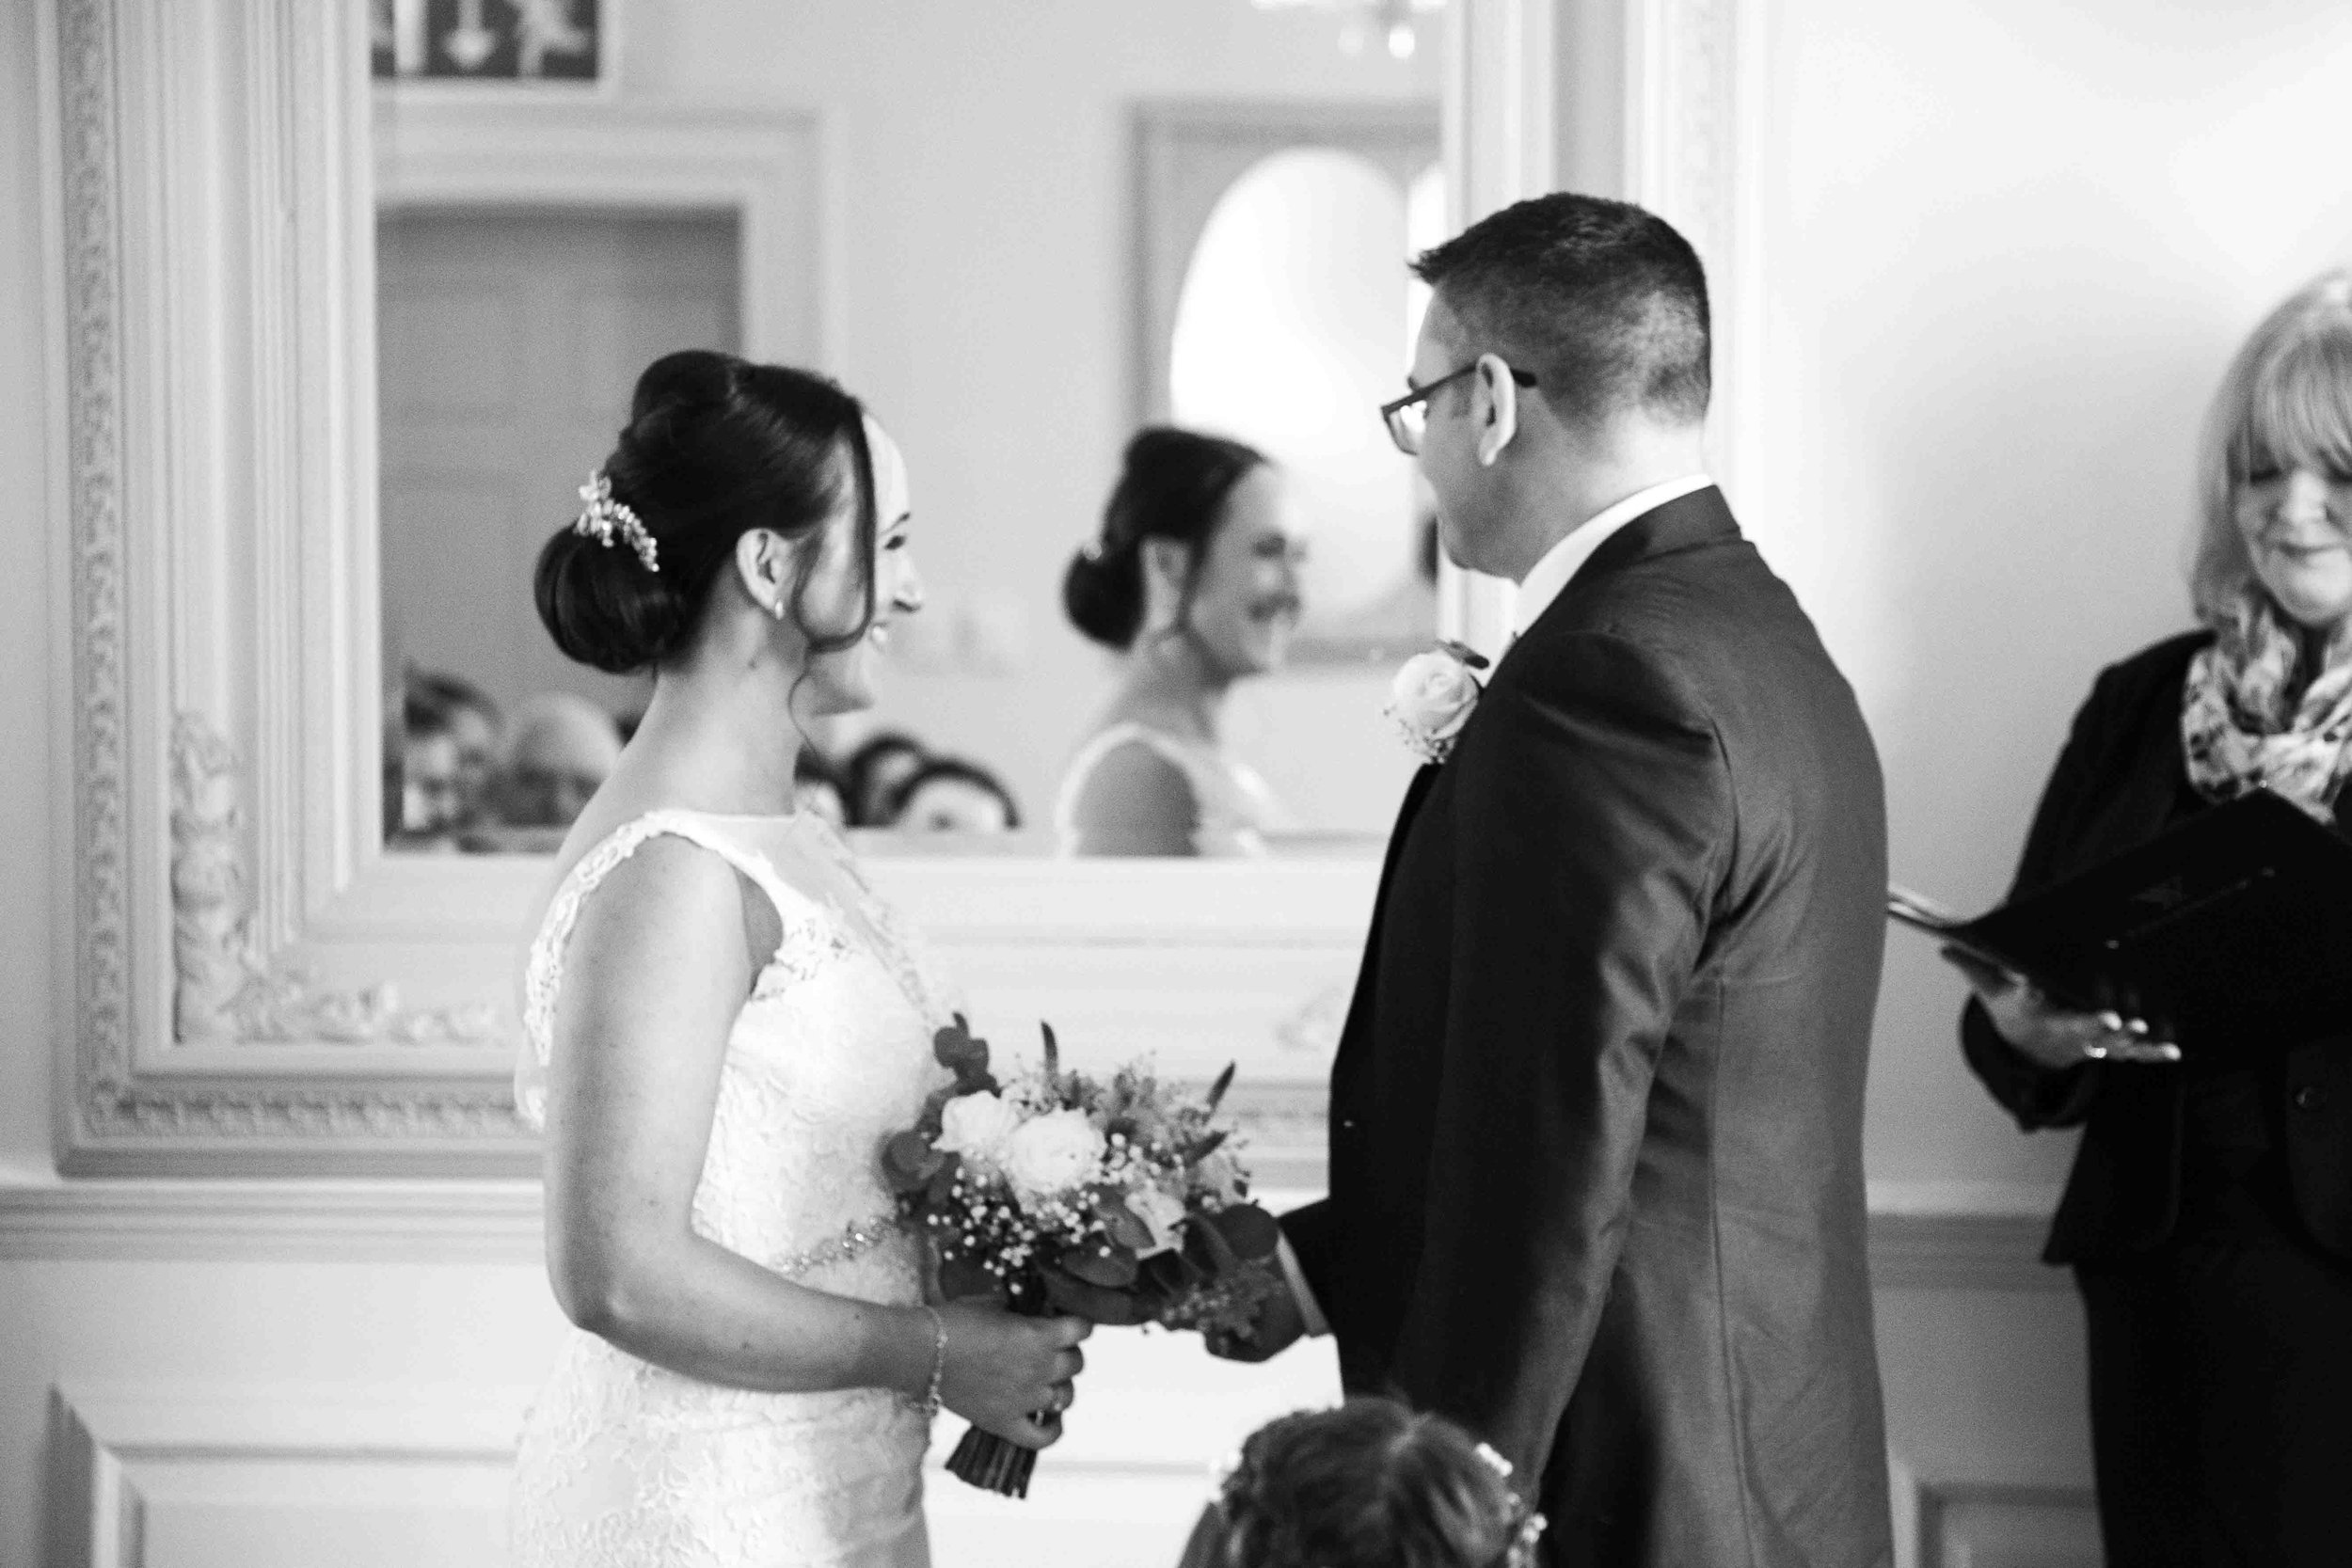 wedding-photos-willenhall-wedding-photographer-wolverhampton-wedding-photographer-west-midlands-wedding-photographer-birmingham-residence-restraunt-and-bar-nantwich.jpg